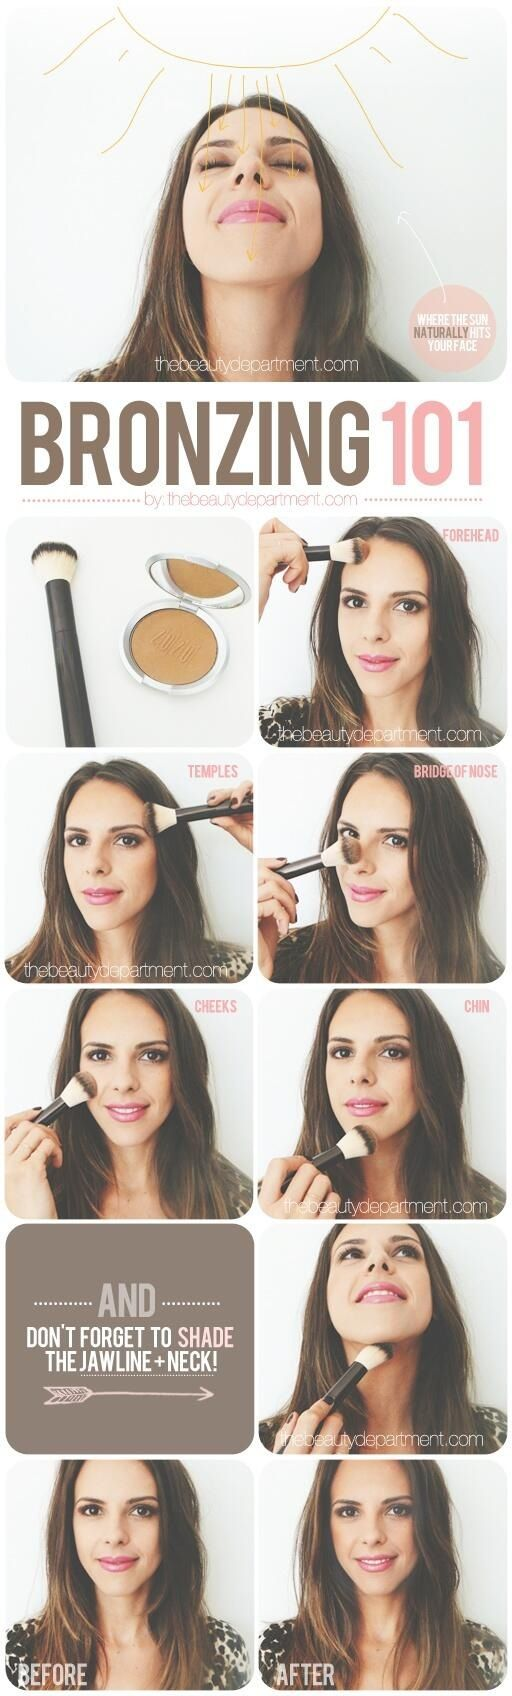 How to use bronzer for conturing